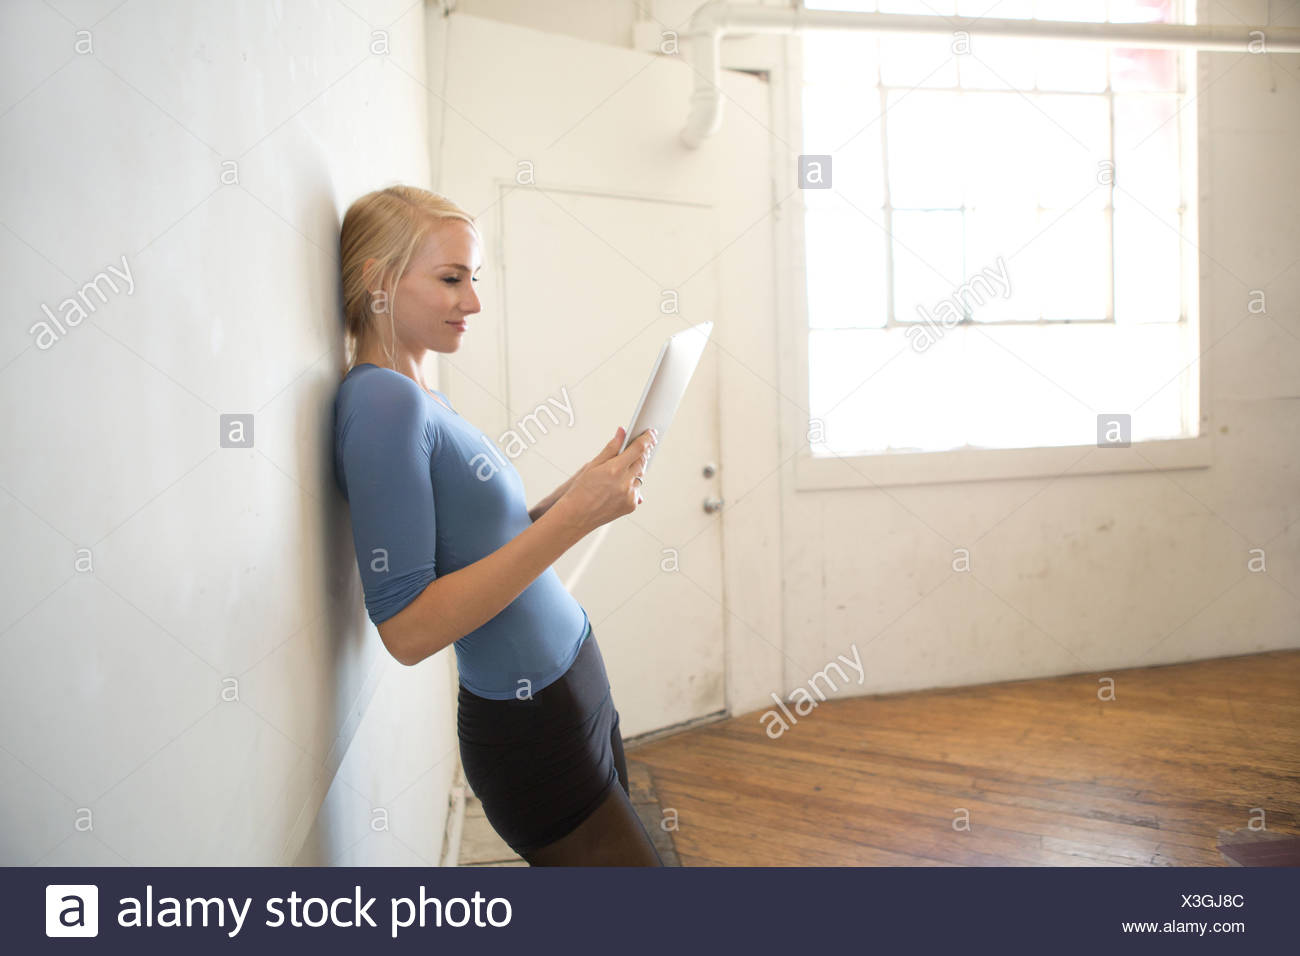 Female dancer leaning against wall using digital tablet Stock Photo